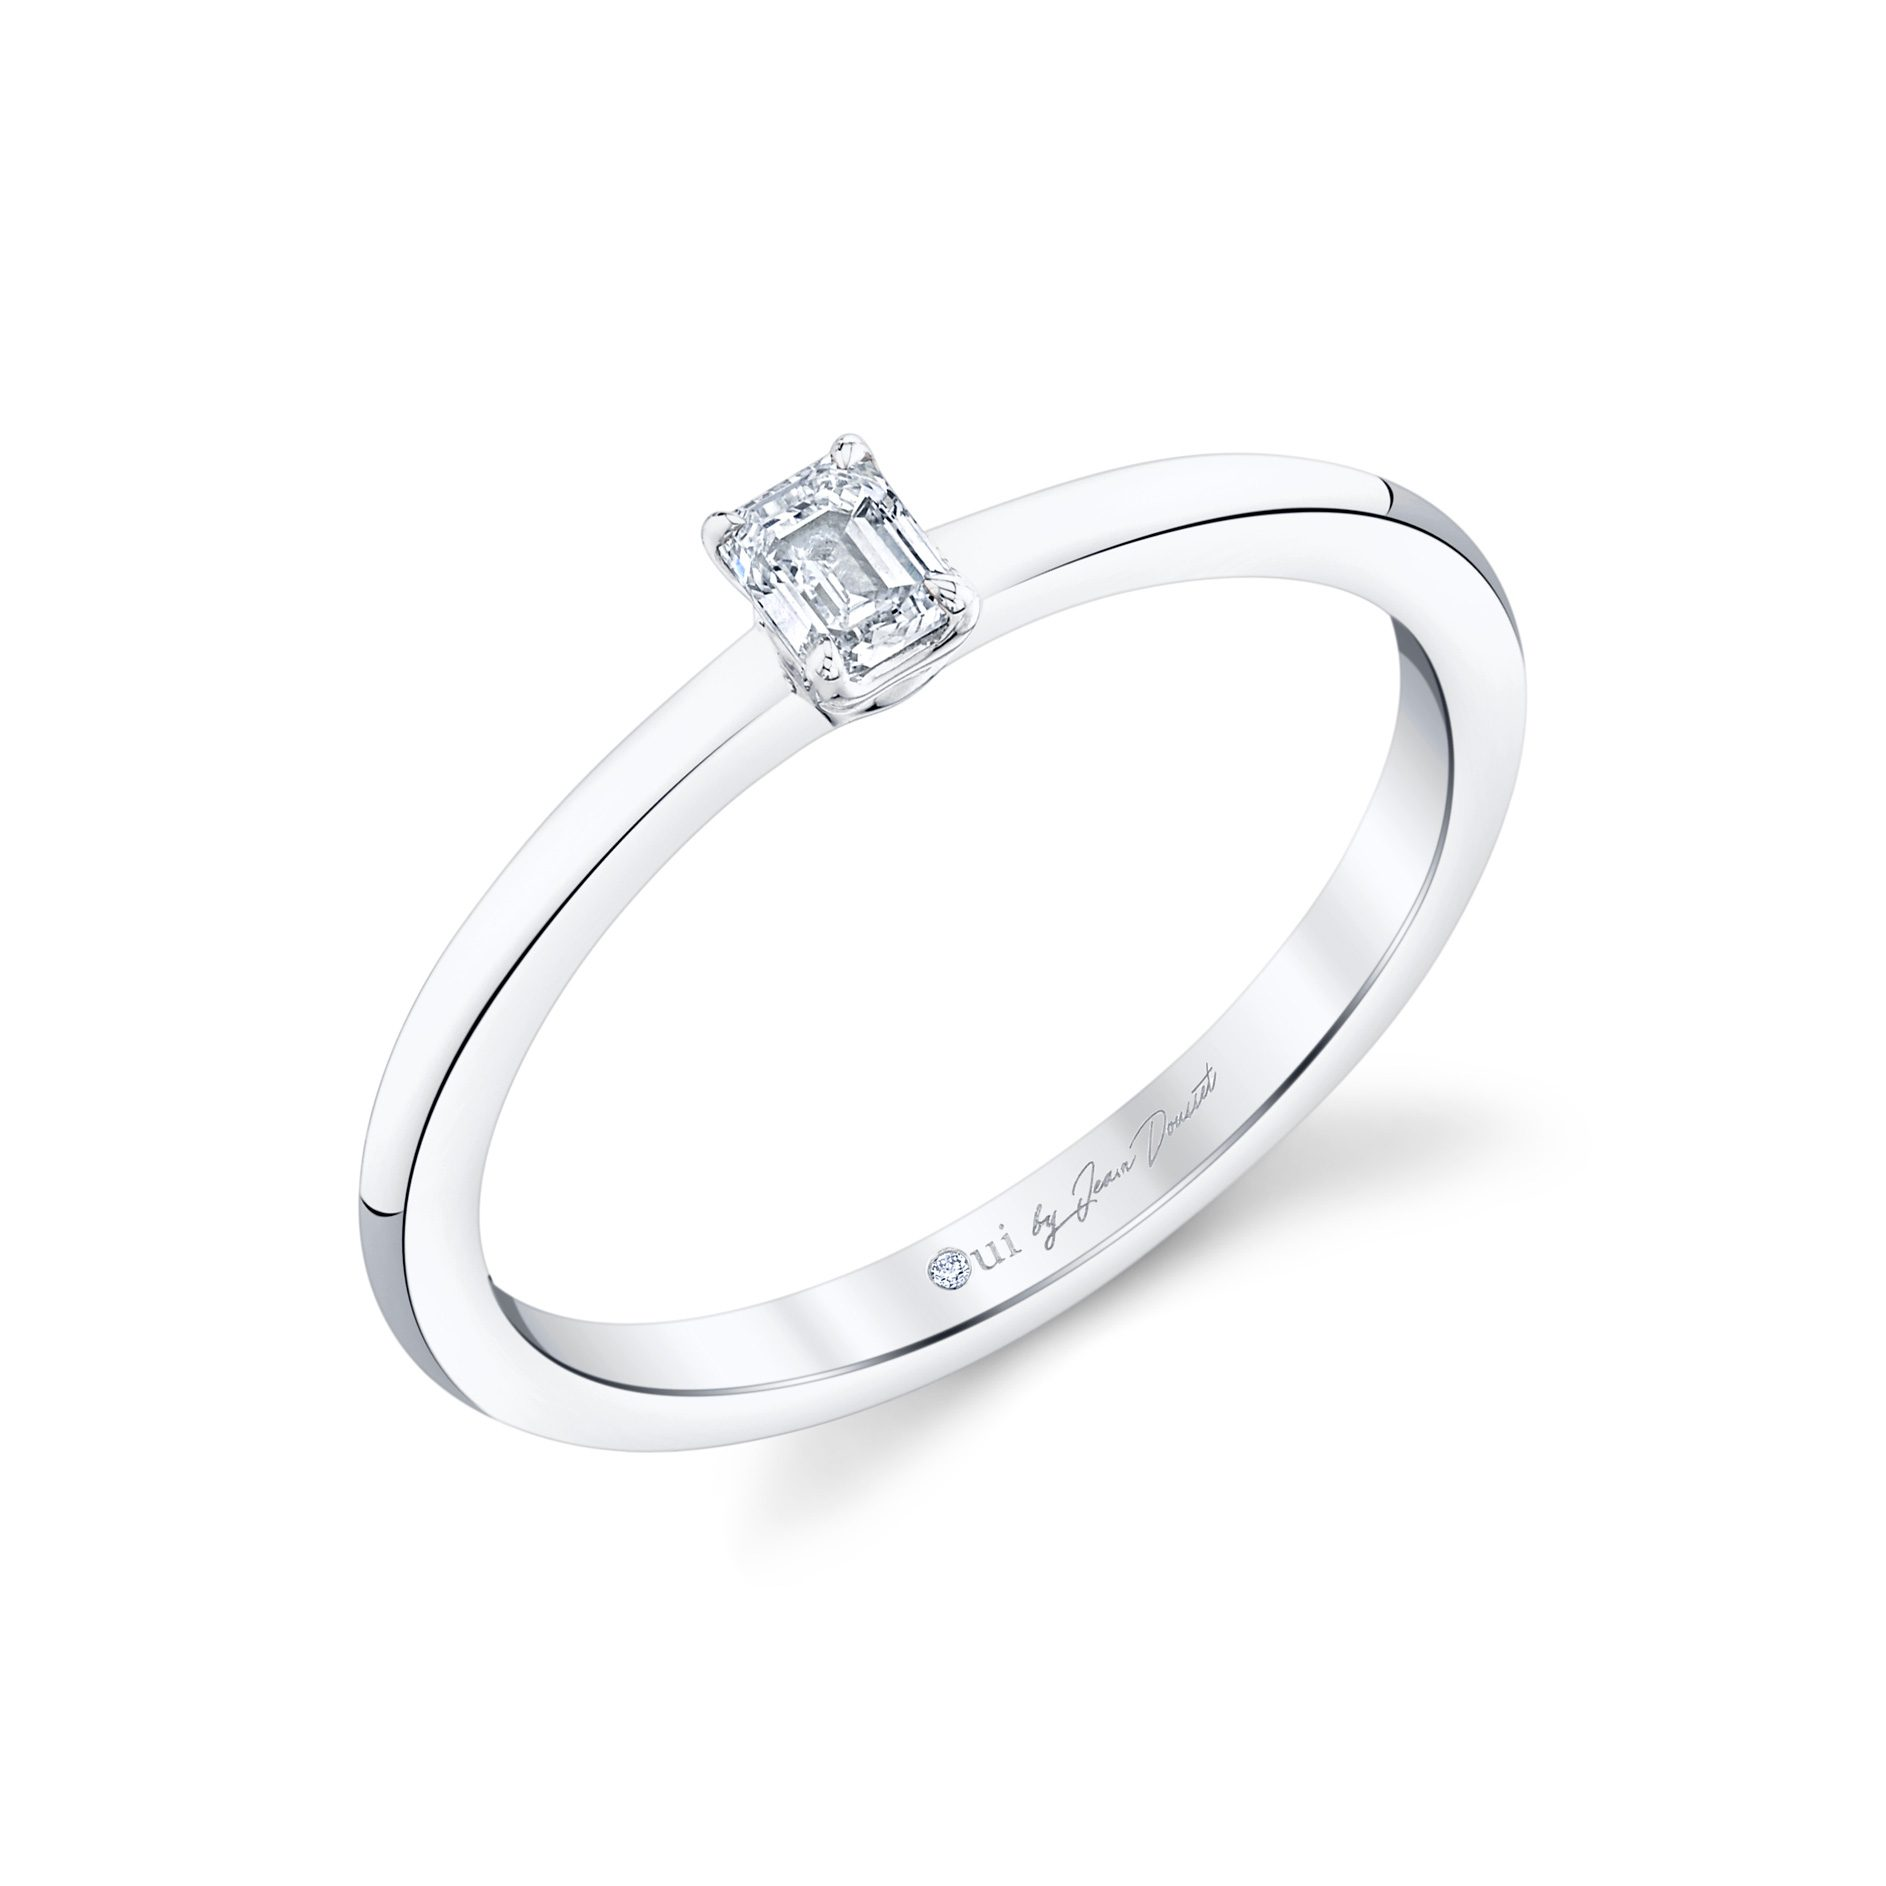 La Petite Emerald Diamond Wedding Band in 18k White Gold Standing View by Oui by Jean Dousset